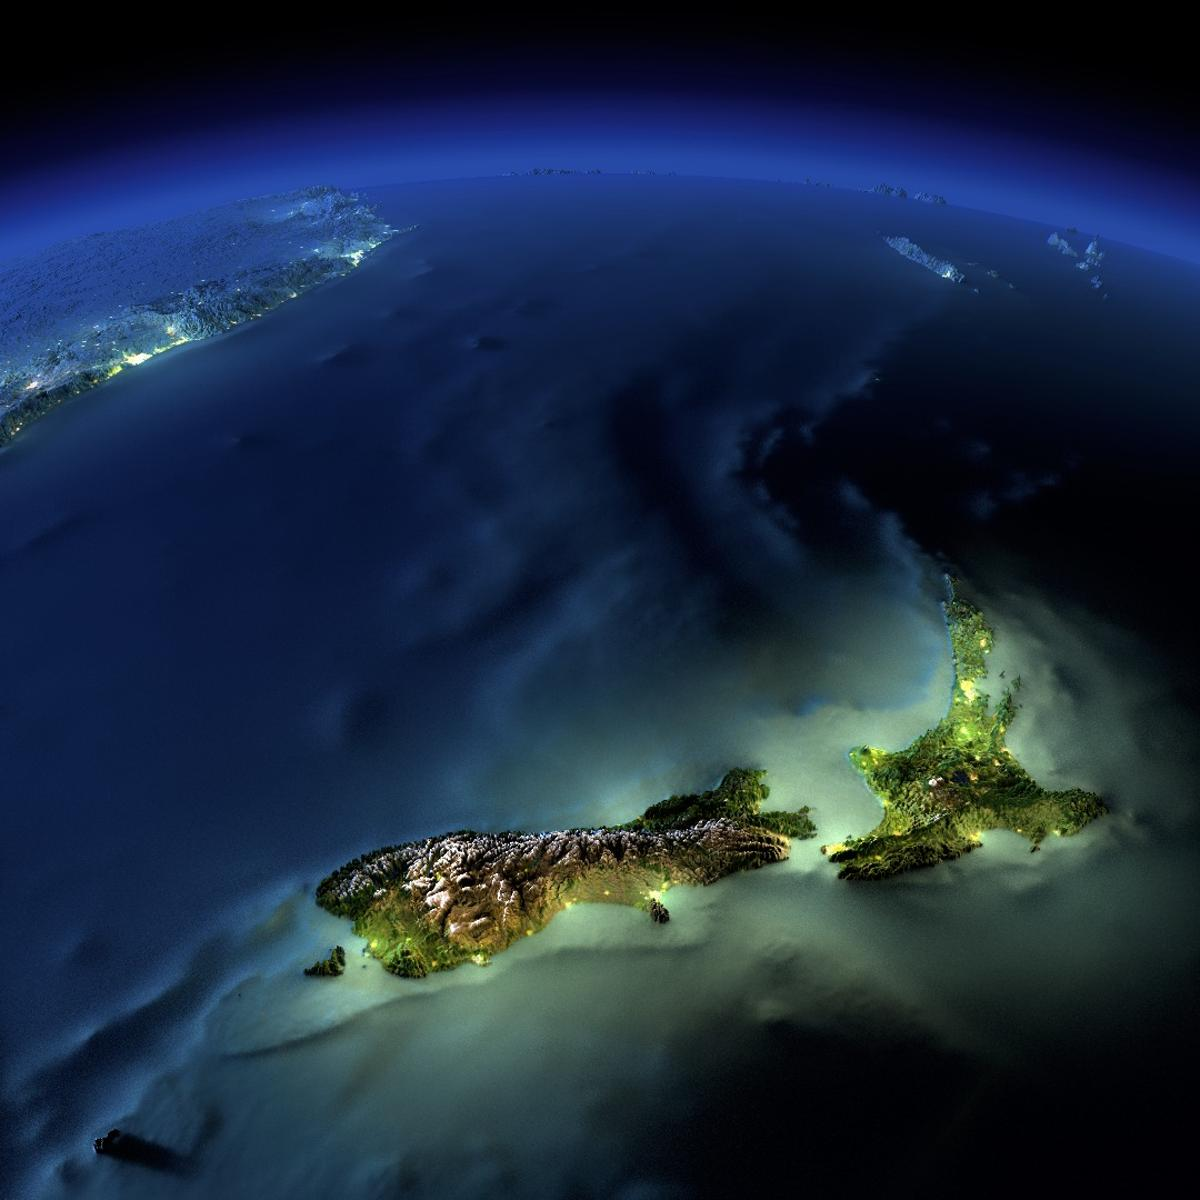 Some scientists claim thatNew Zealand sitson the continent of Zealandia and not Australia